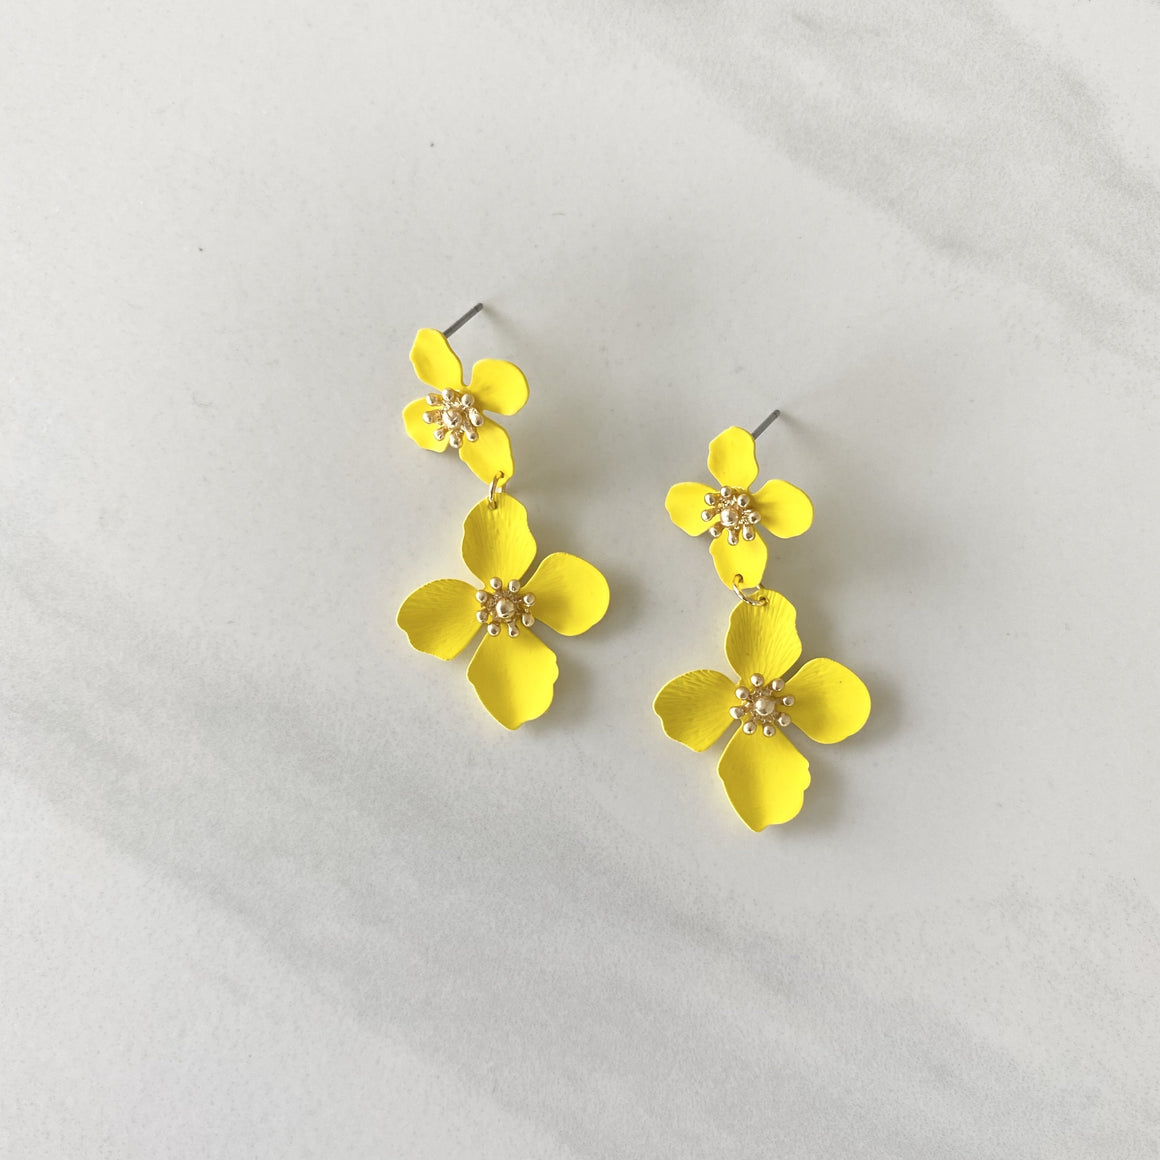 Grew On You Yellow Lily Earrings - Dainty Hooligan